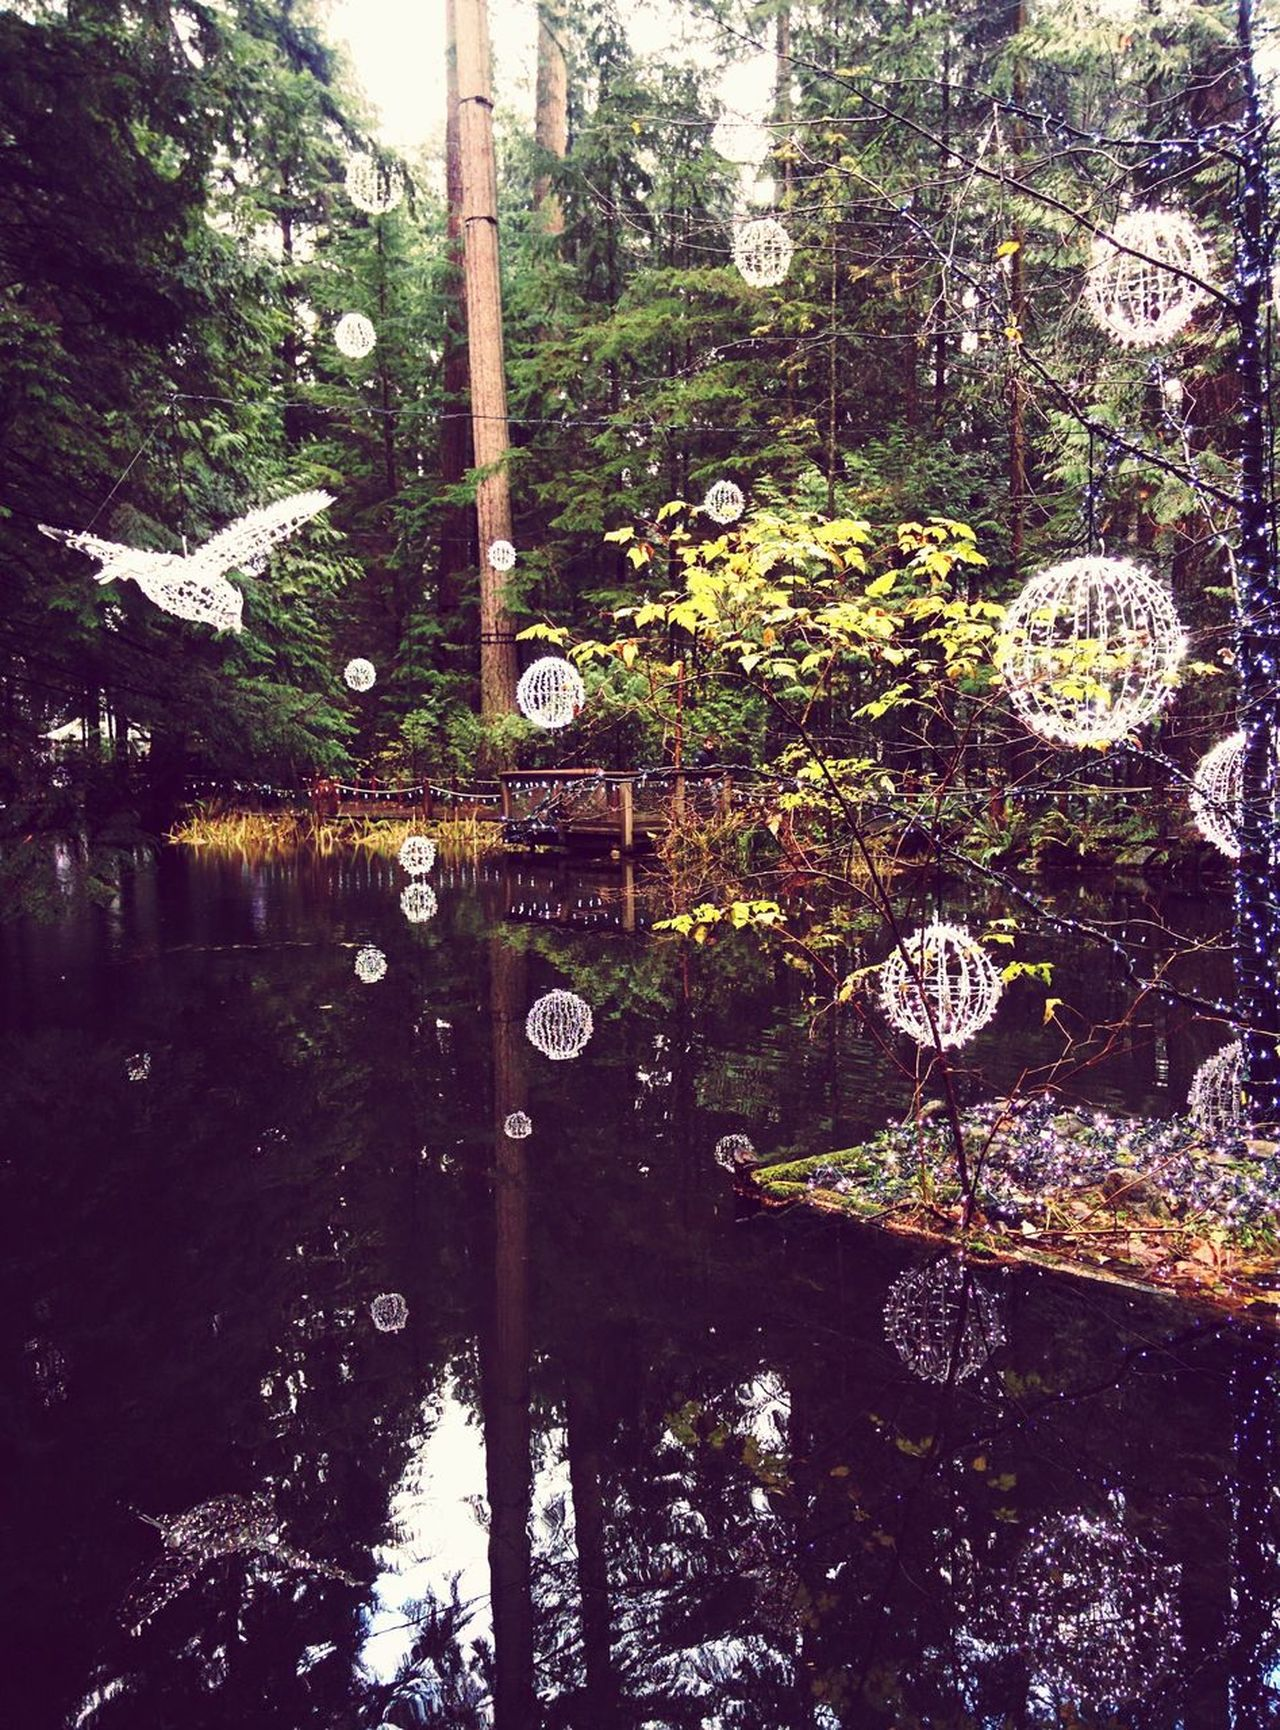 Tree Reflection Full Frame No People Day Outdoors Nature Water Backgrounds Beauty In Nature Capilano Suspension Bridge Christmas Lights Reflctions Clear EyeEmNewHere